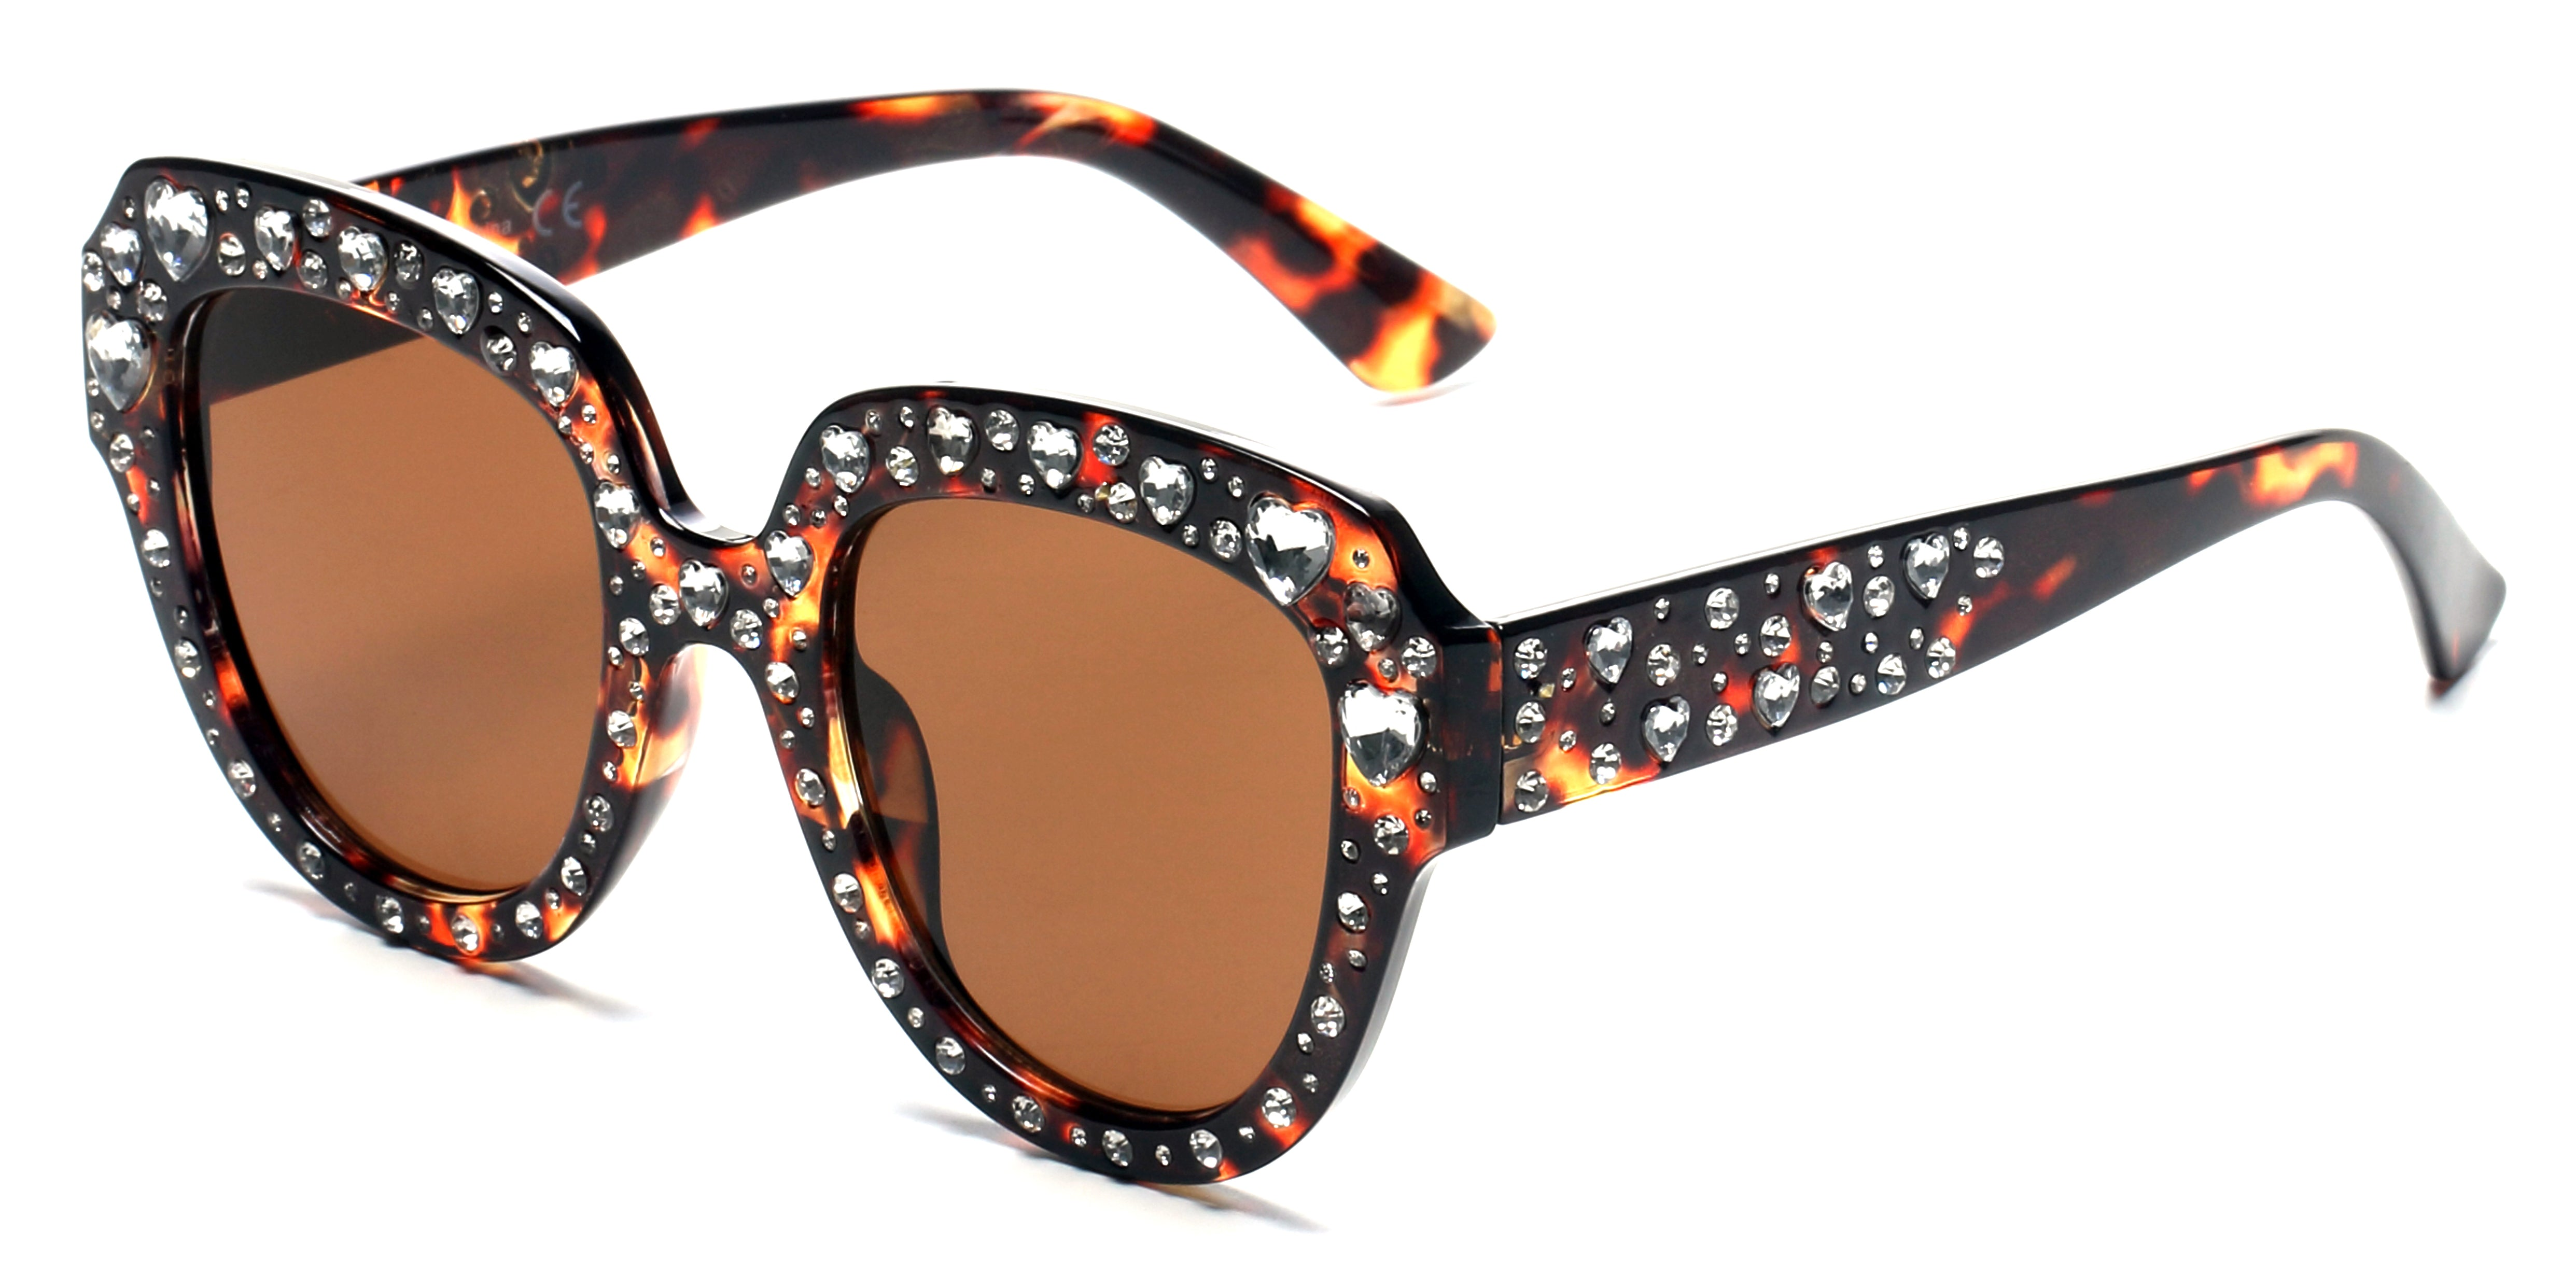 Women Retro Bold Rhinestone Round Cat Eye UV Protection Fashion Sunglasses - Tortoise